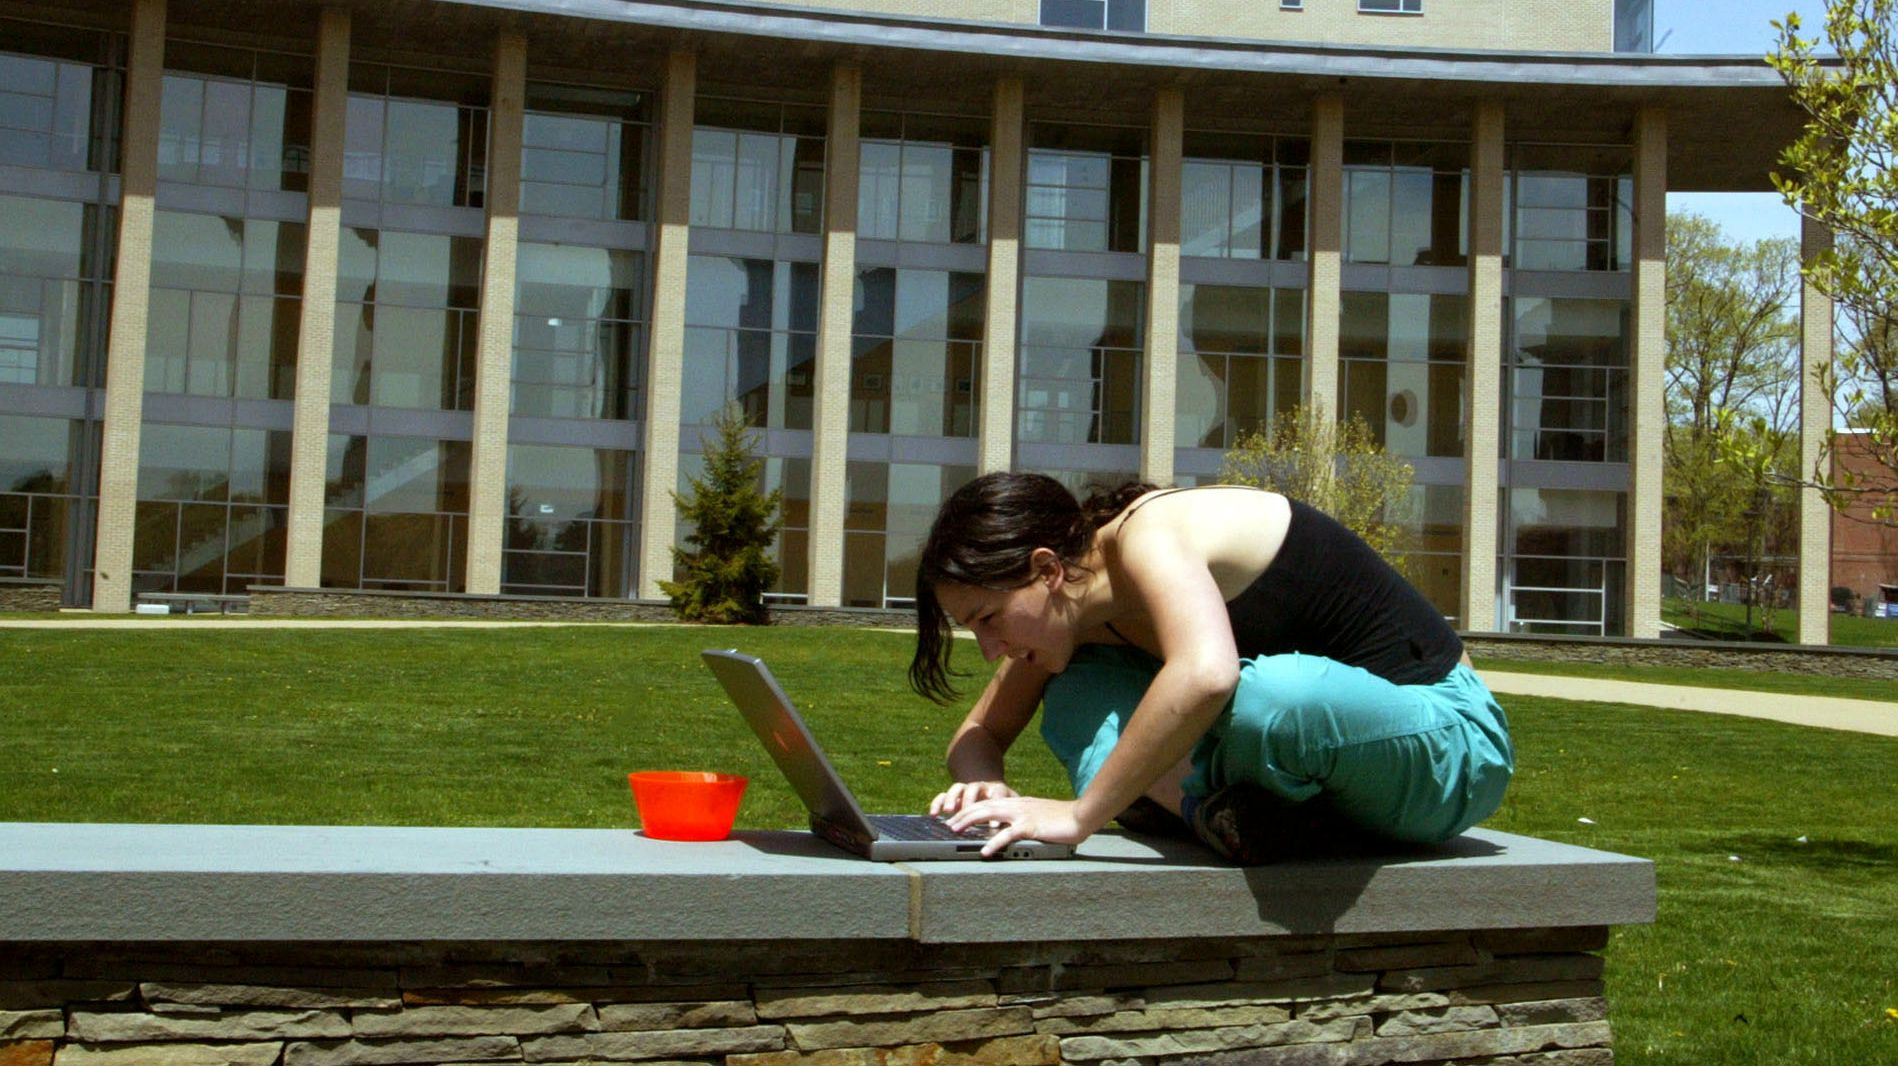 email theft cybersecurity cybernetwork cybertheft phishing email account address password identity theft university college yale harvard stanford china taobao alibaba chinese amazon prime Lauren Hafford of Fort Collins, Colo., a materials science major scheduled to graduate in 2007 from the Franklin W. Olin College of Engineering, works on her laptop outside the Olin Center on the school's campus May 8, 2006, in Needham, Mass. On Sunday 66 students will become Olin's first graduates -- bringing to a close four years of not only learning about engineering but spending time building the makings of a school from scratch. (AP Photo/Bizuayehu Tesfaye